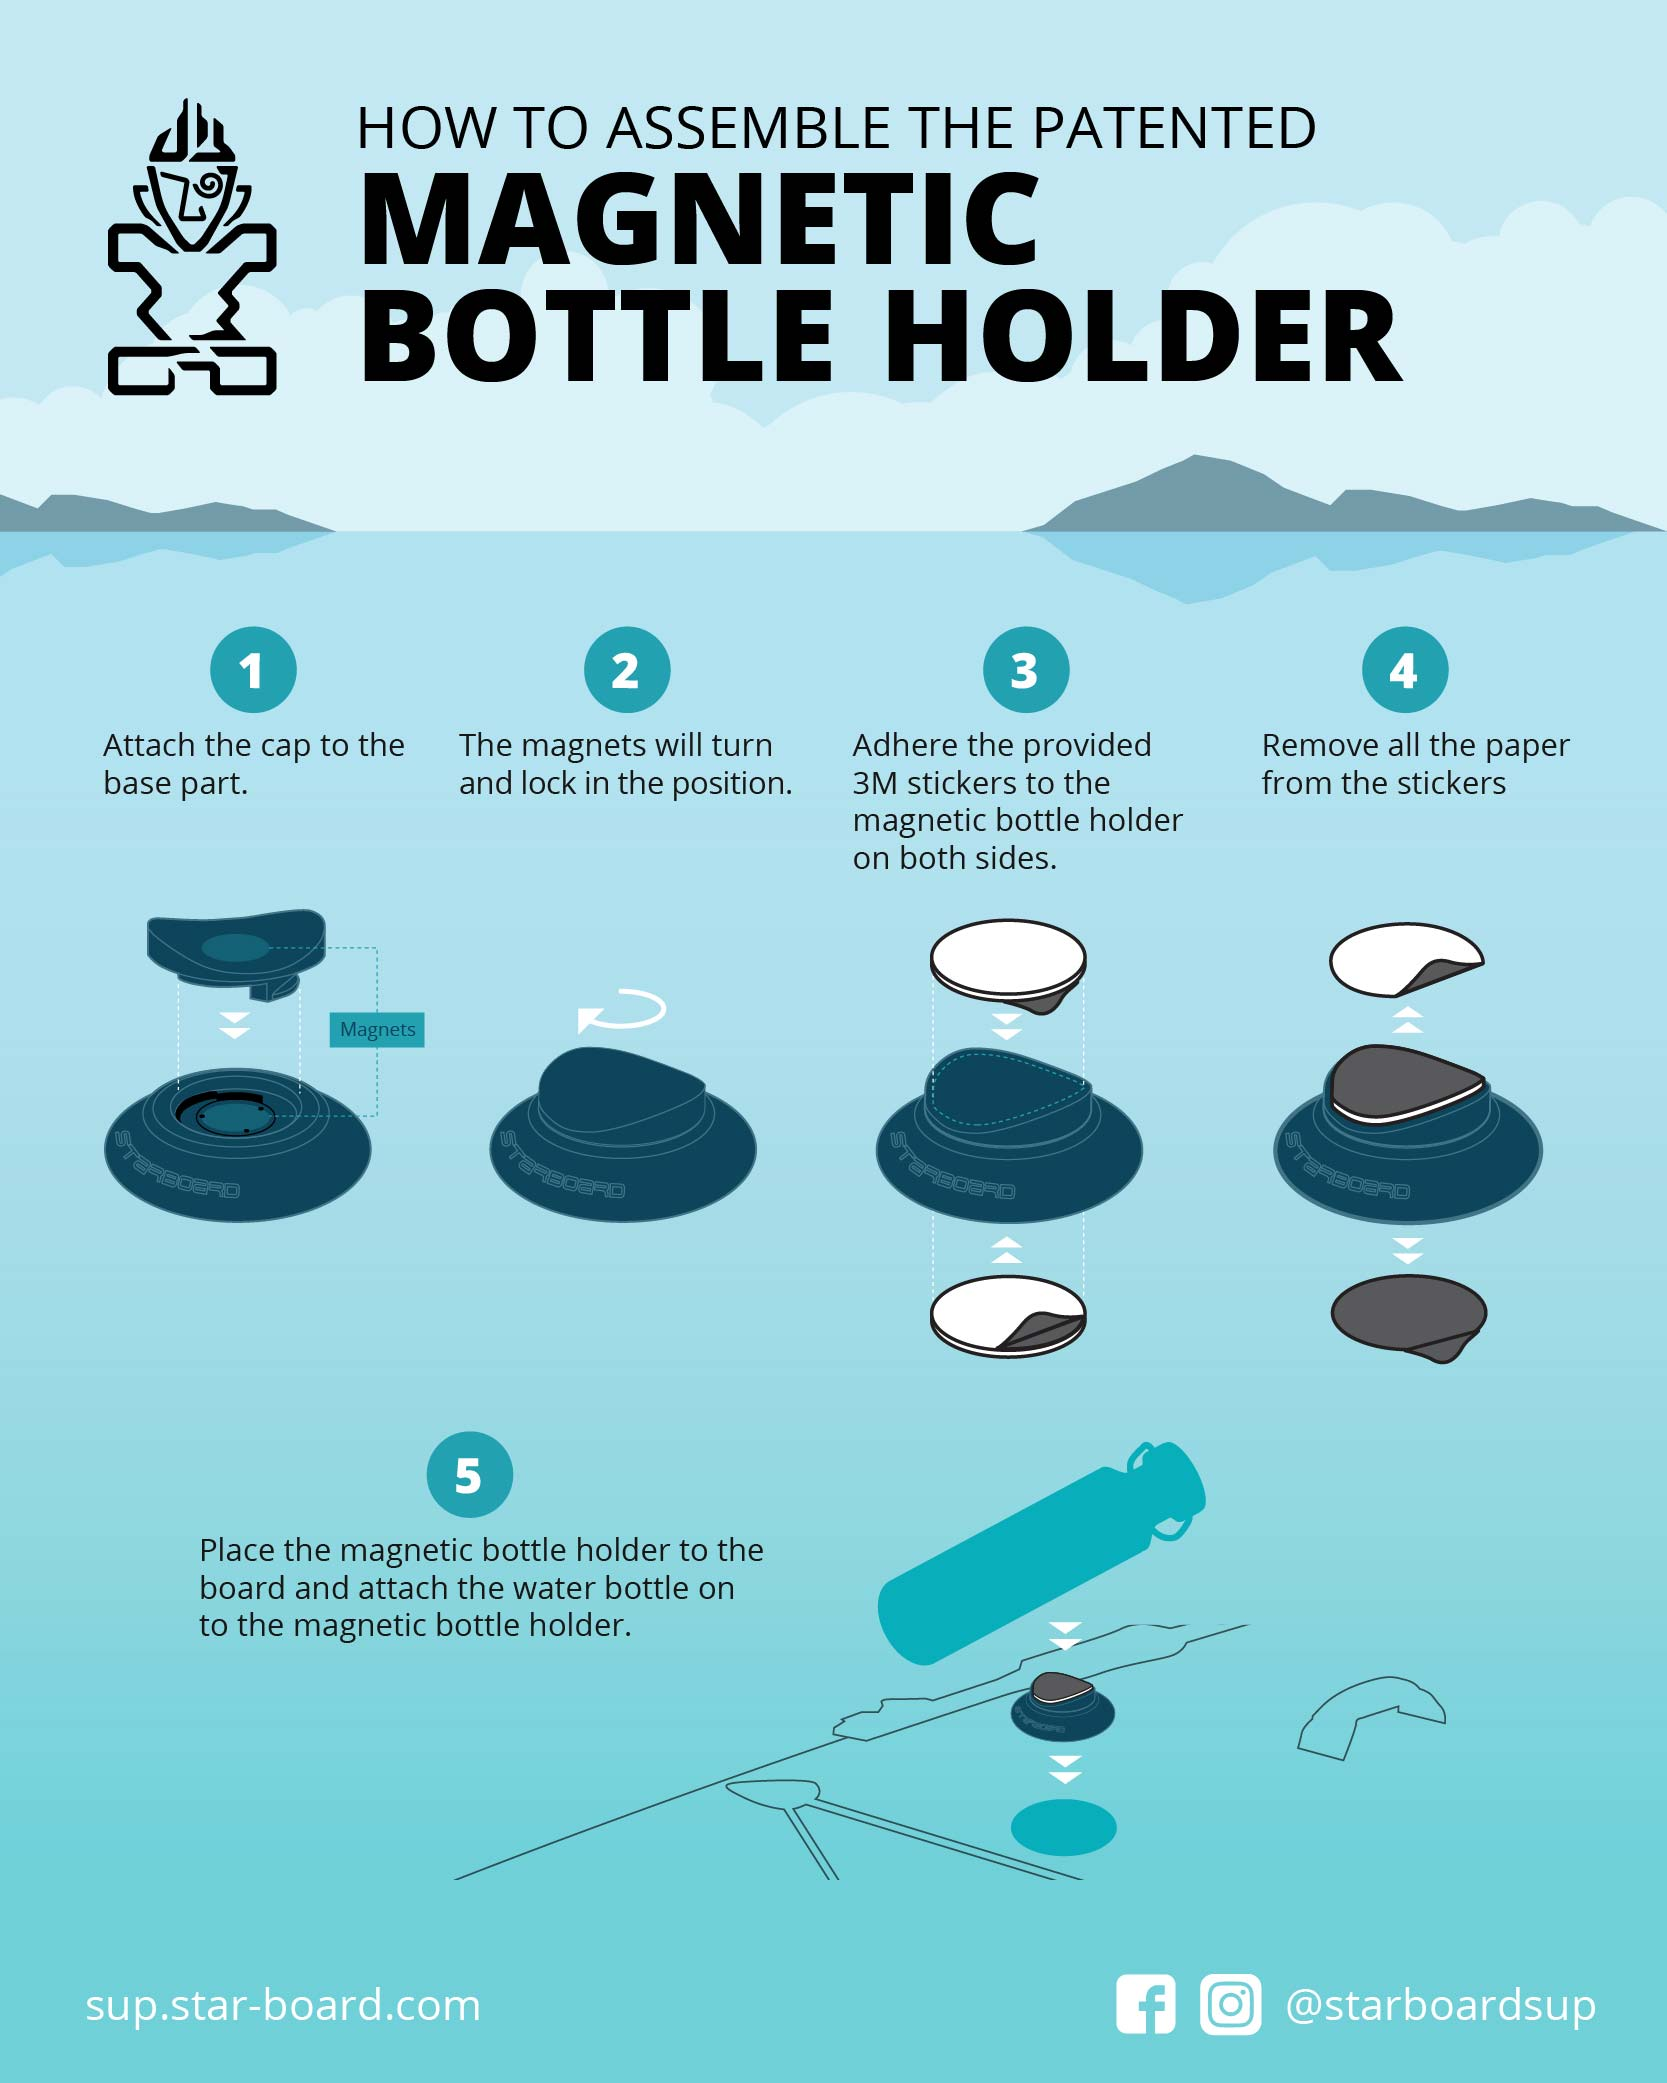 Guide How To Assemble The Patented Magnetic Bottle Holder - Starboard